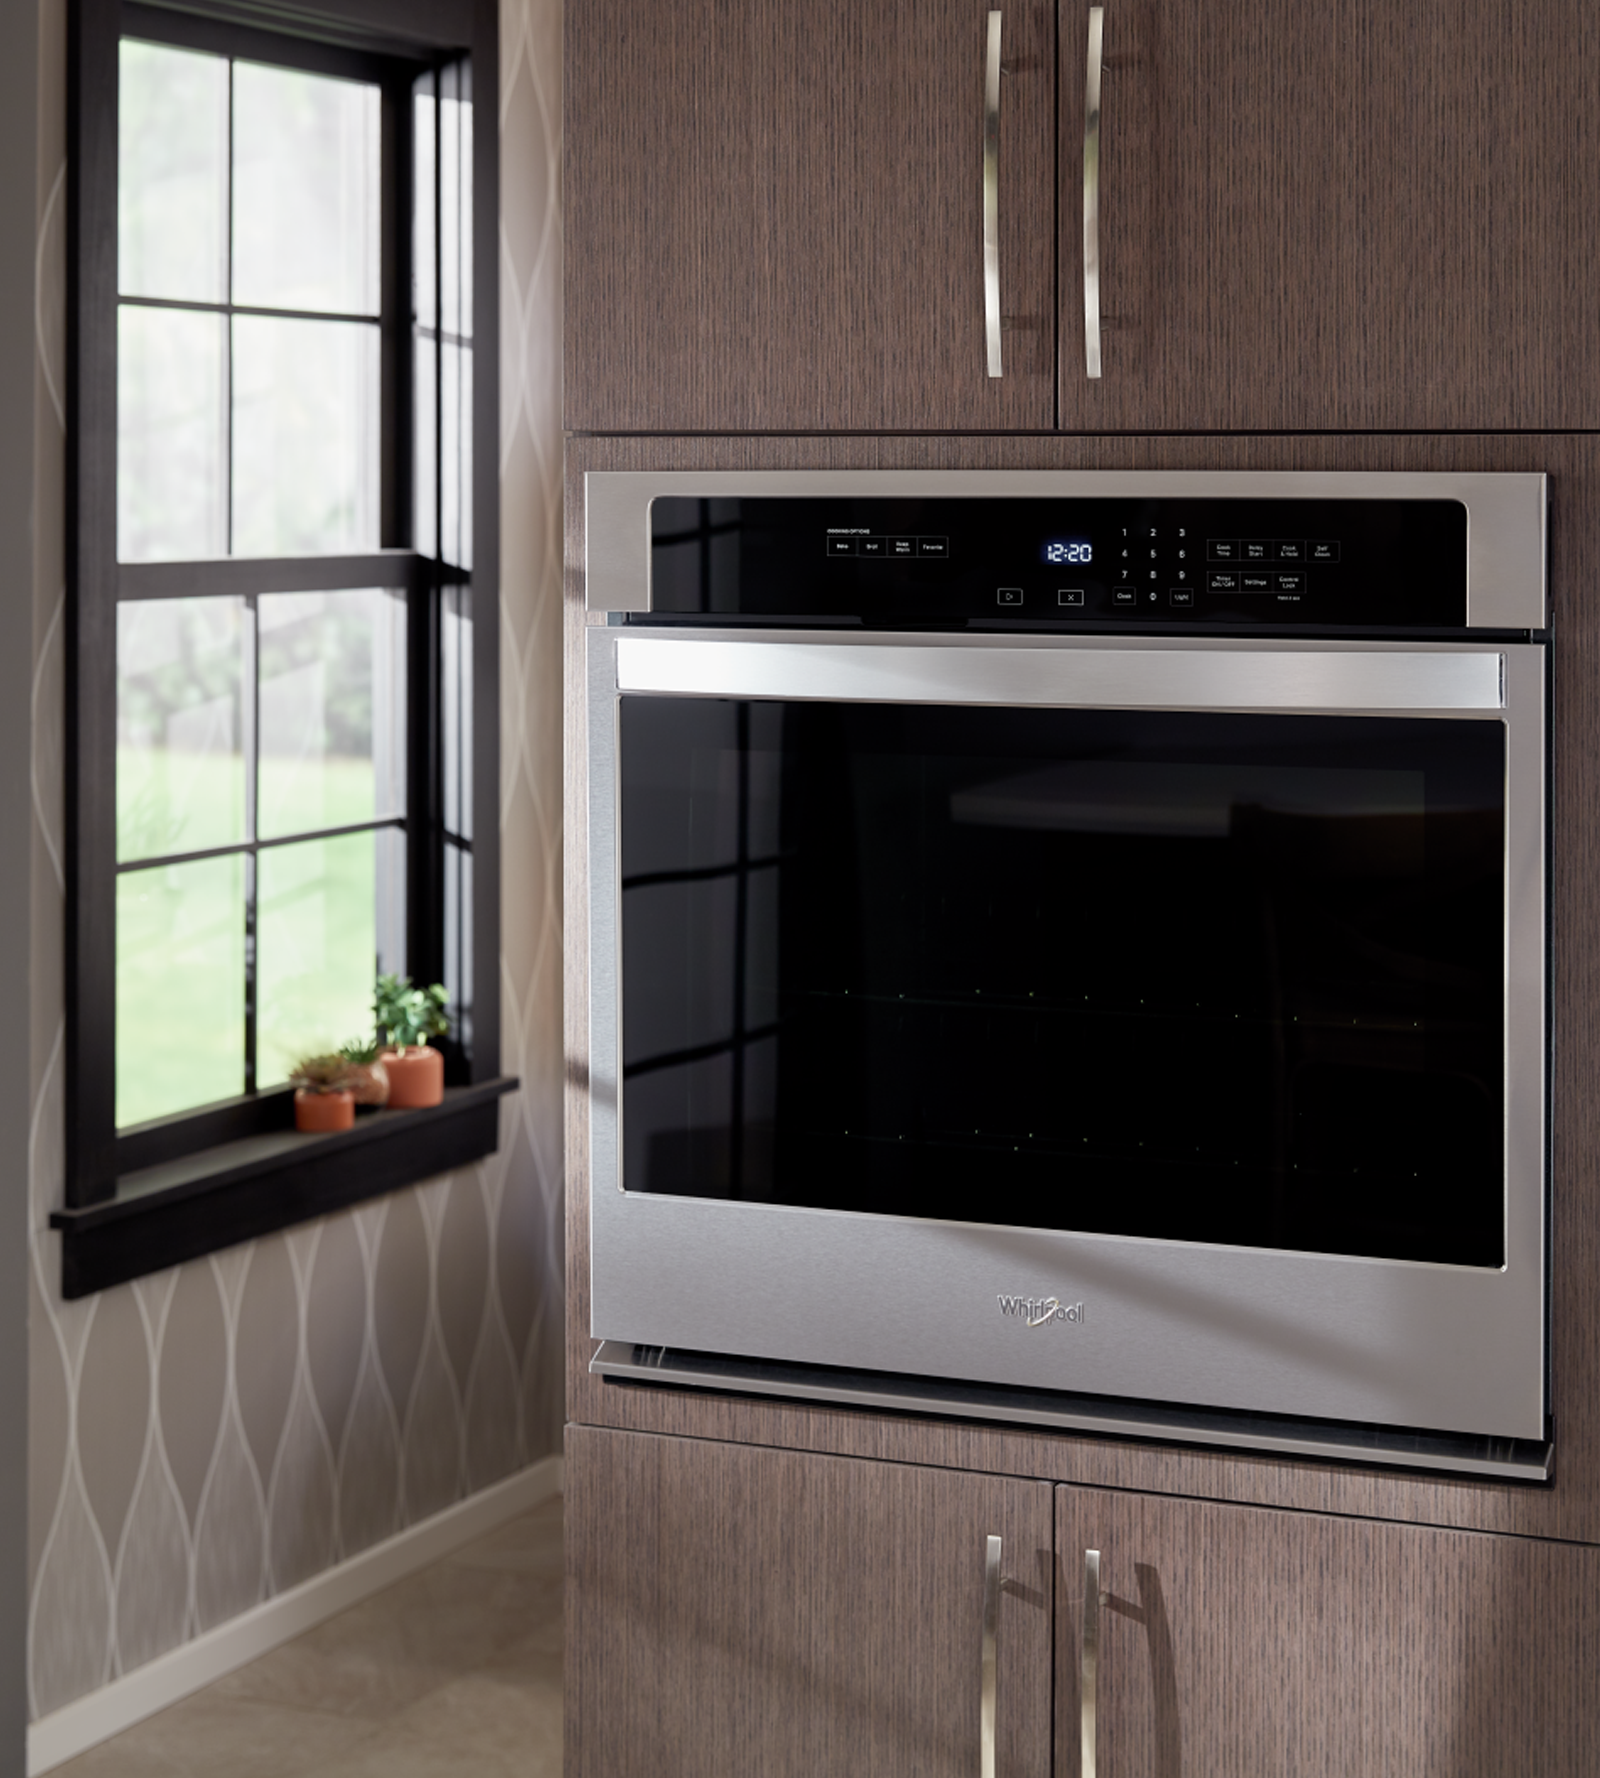 Whirlpool Wall oven